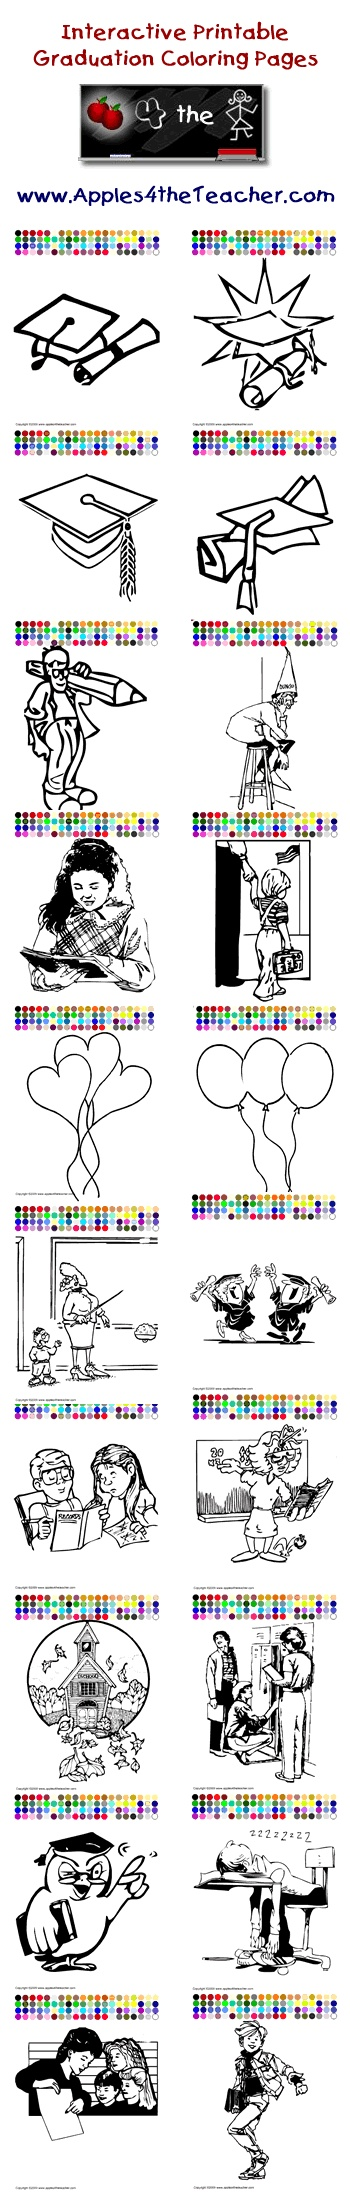 28 best college coloring book images on Pinterest | Coloring books ...